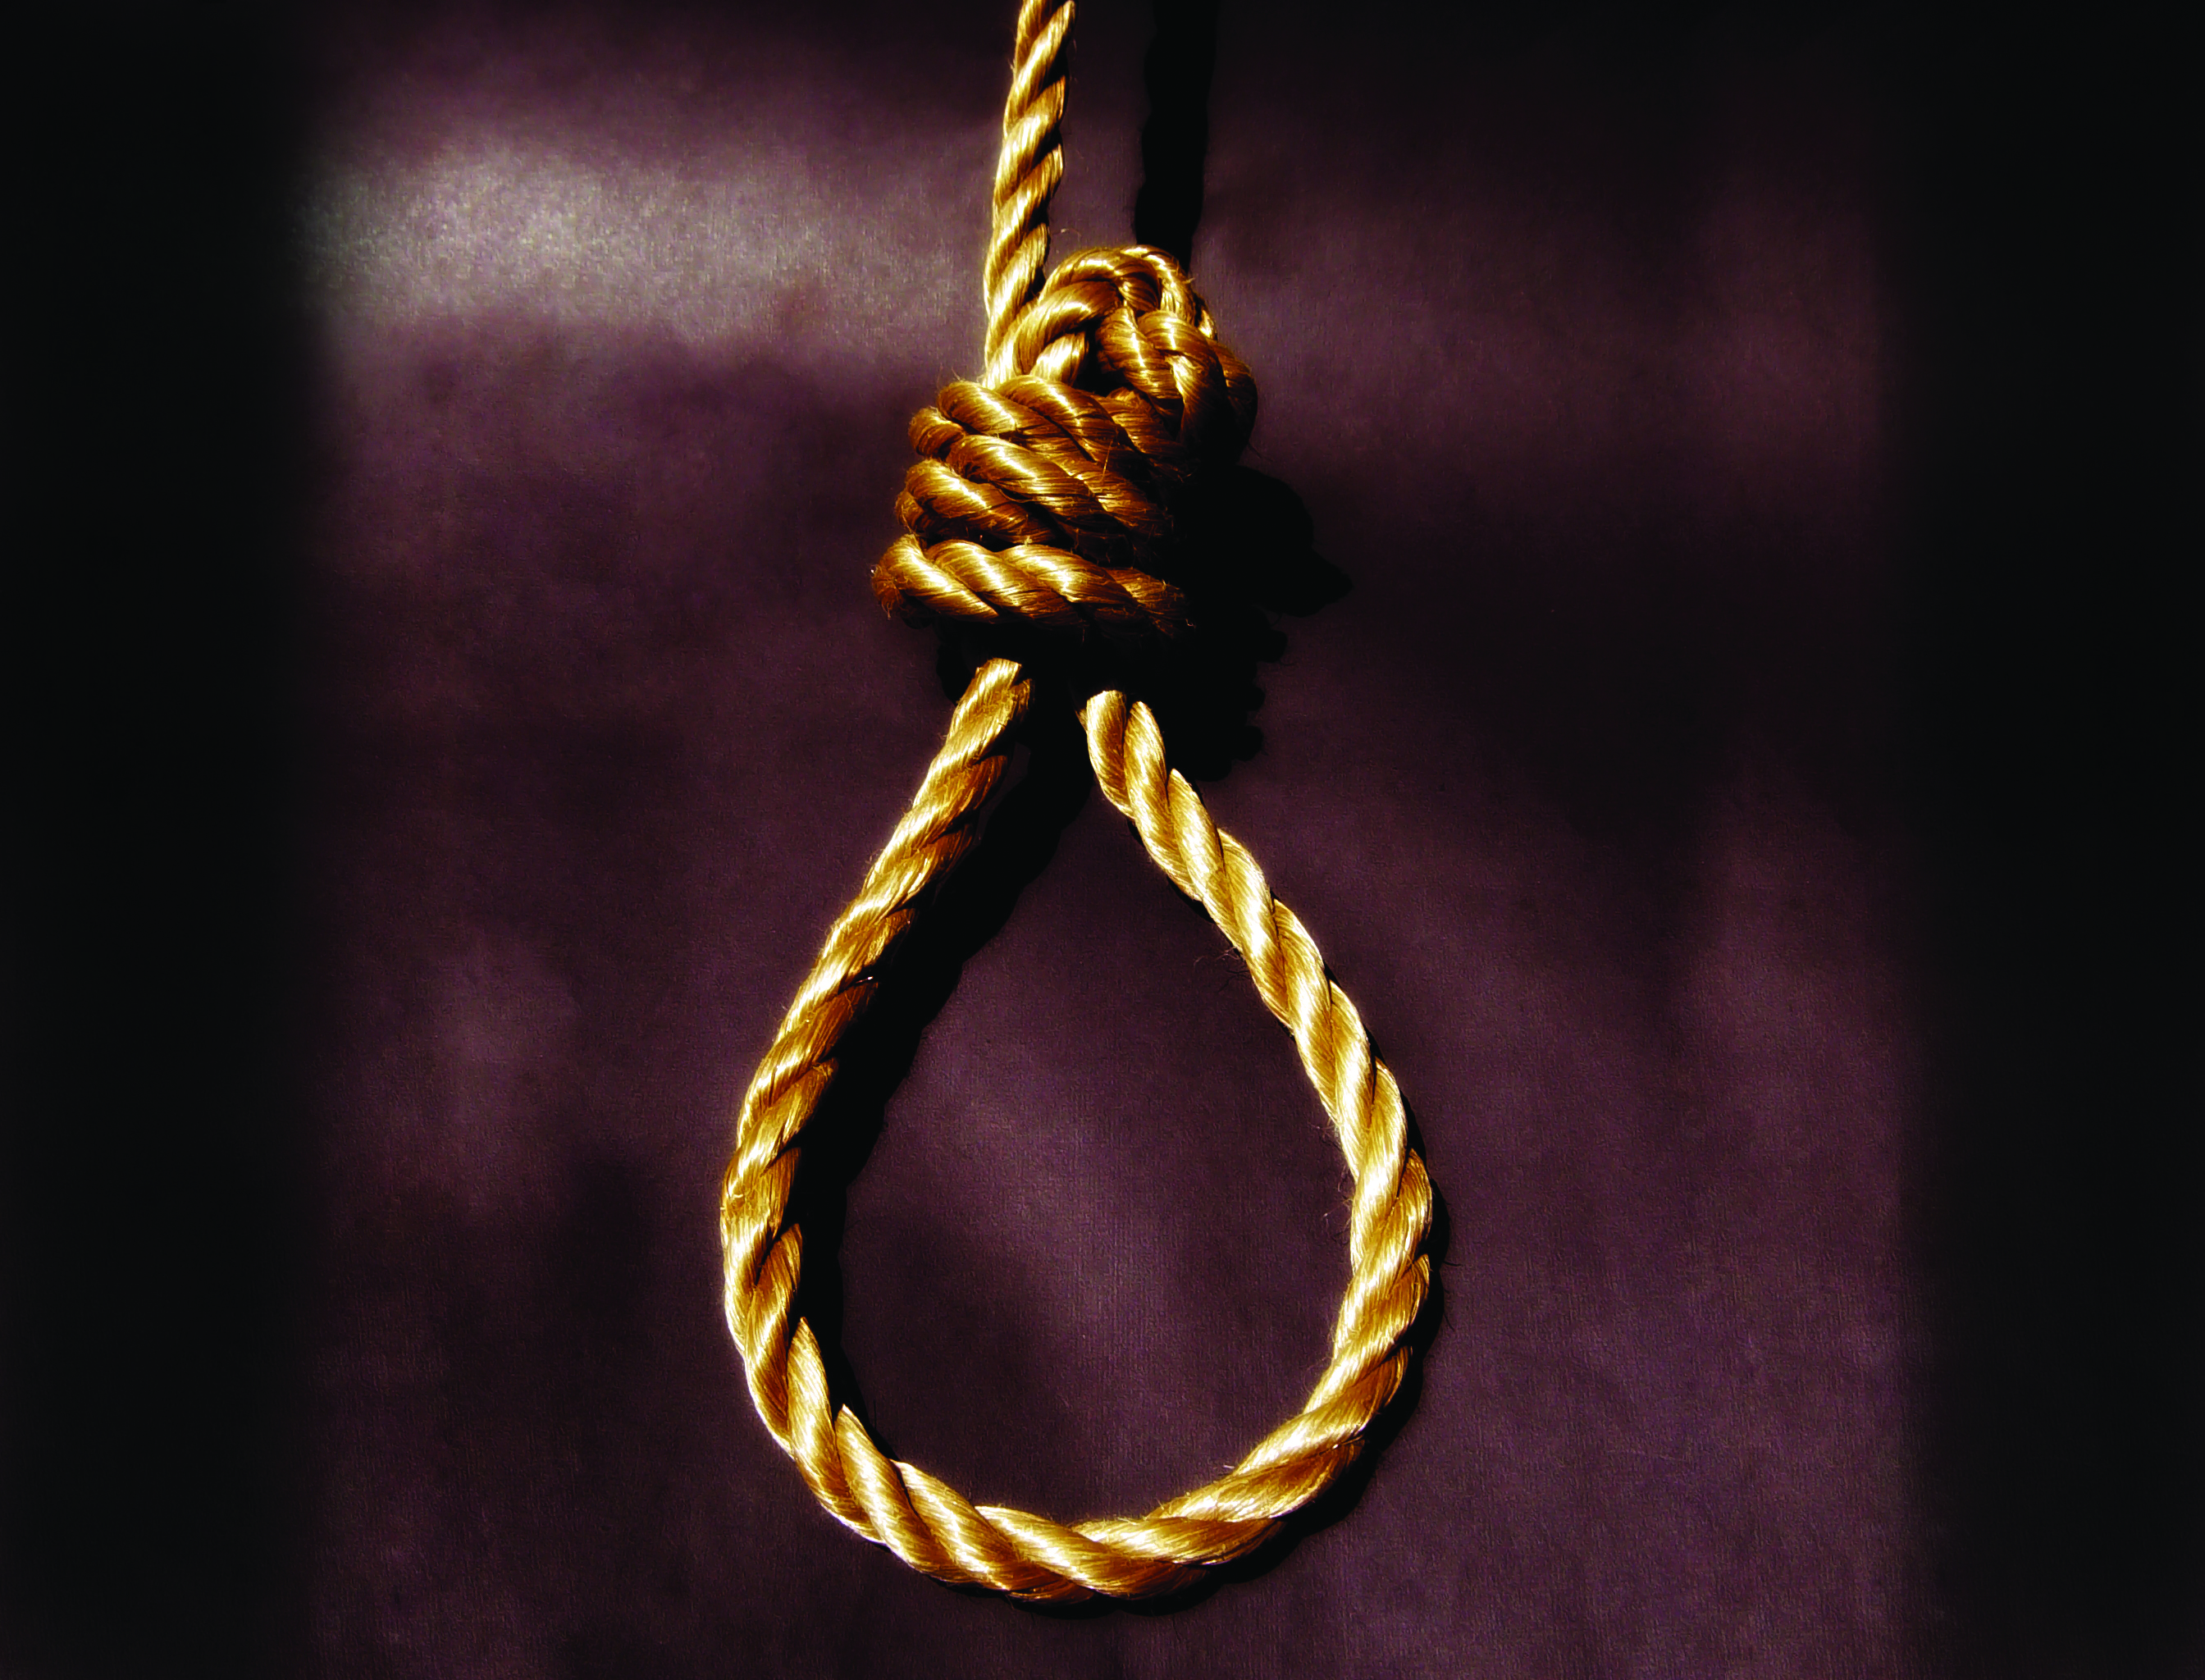 About the 'mandatory' death penalty